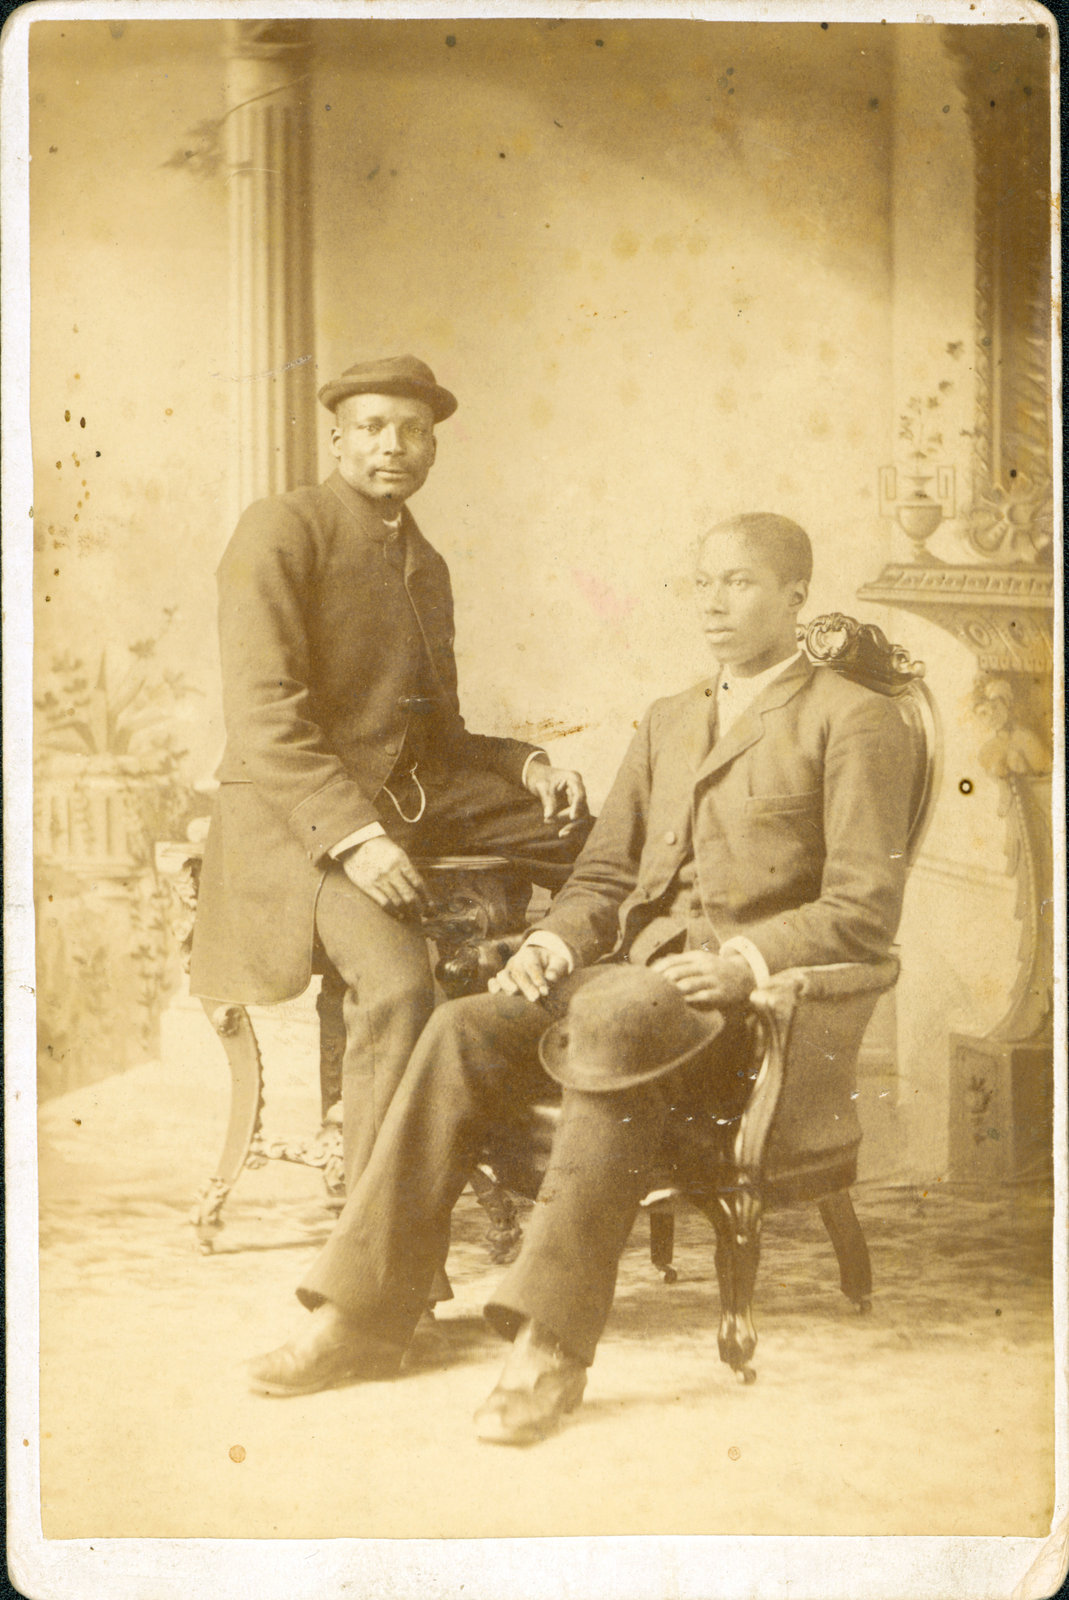 An undated cabinet card of two Black men photographed in London or St. Thomas, Ont, circa 1866-1890. Courtesy the Brock University James A. Gibson Special Collections & Archives.